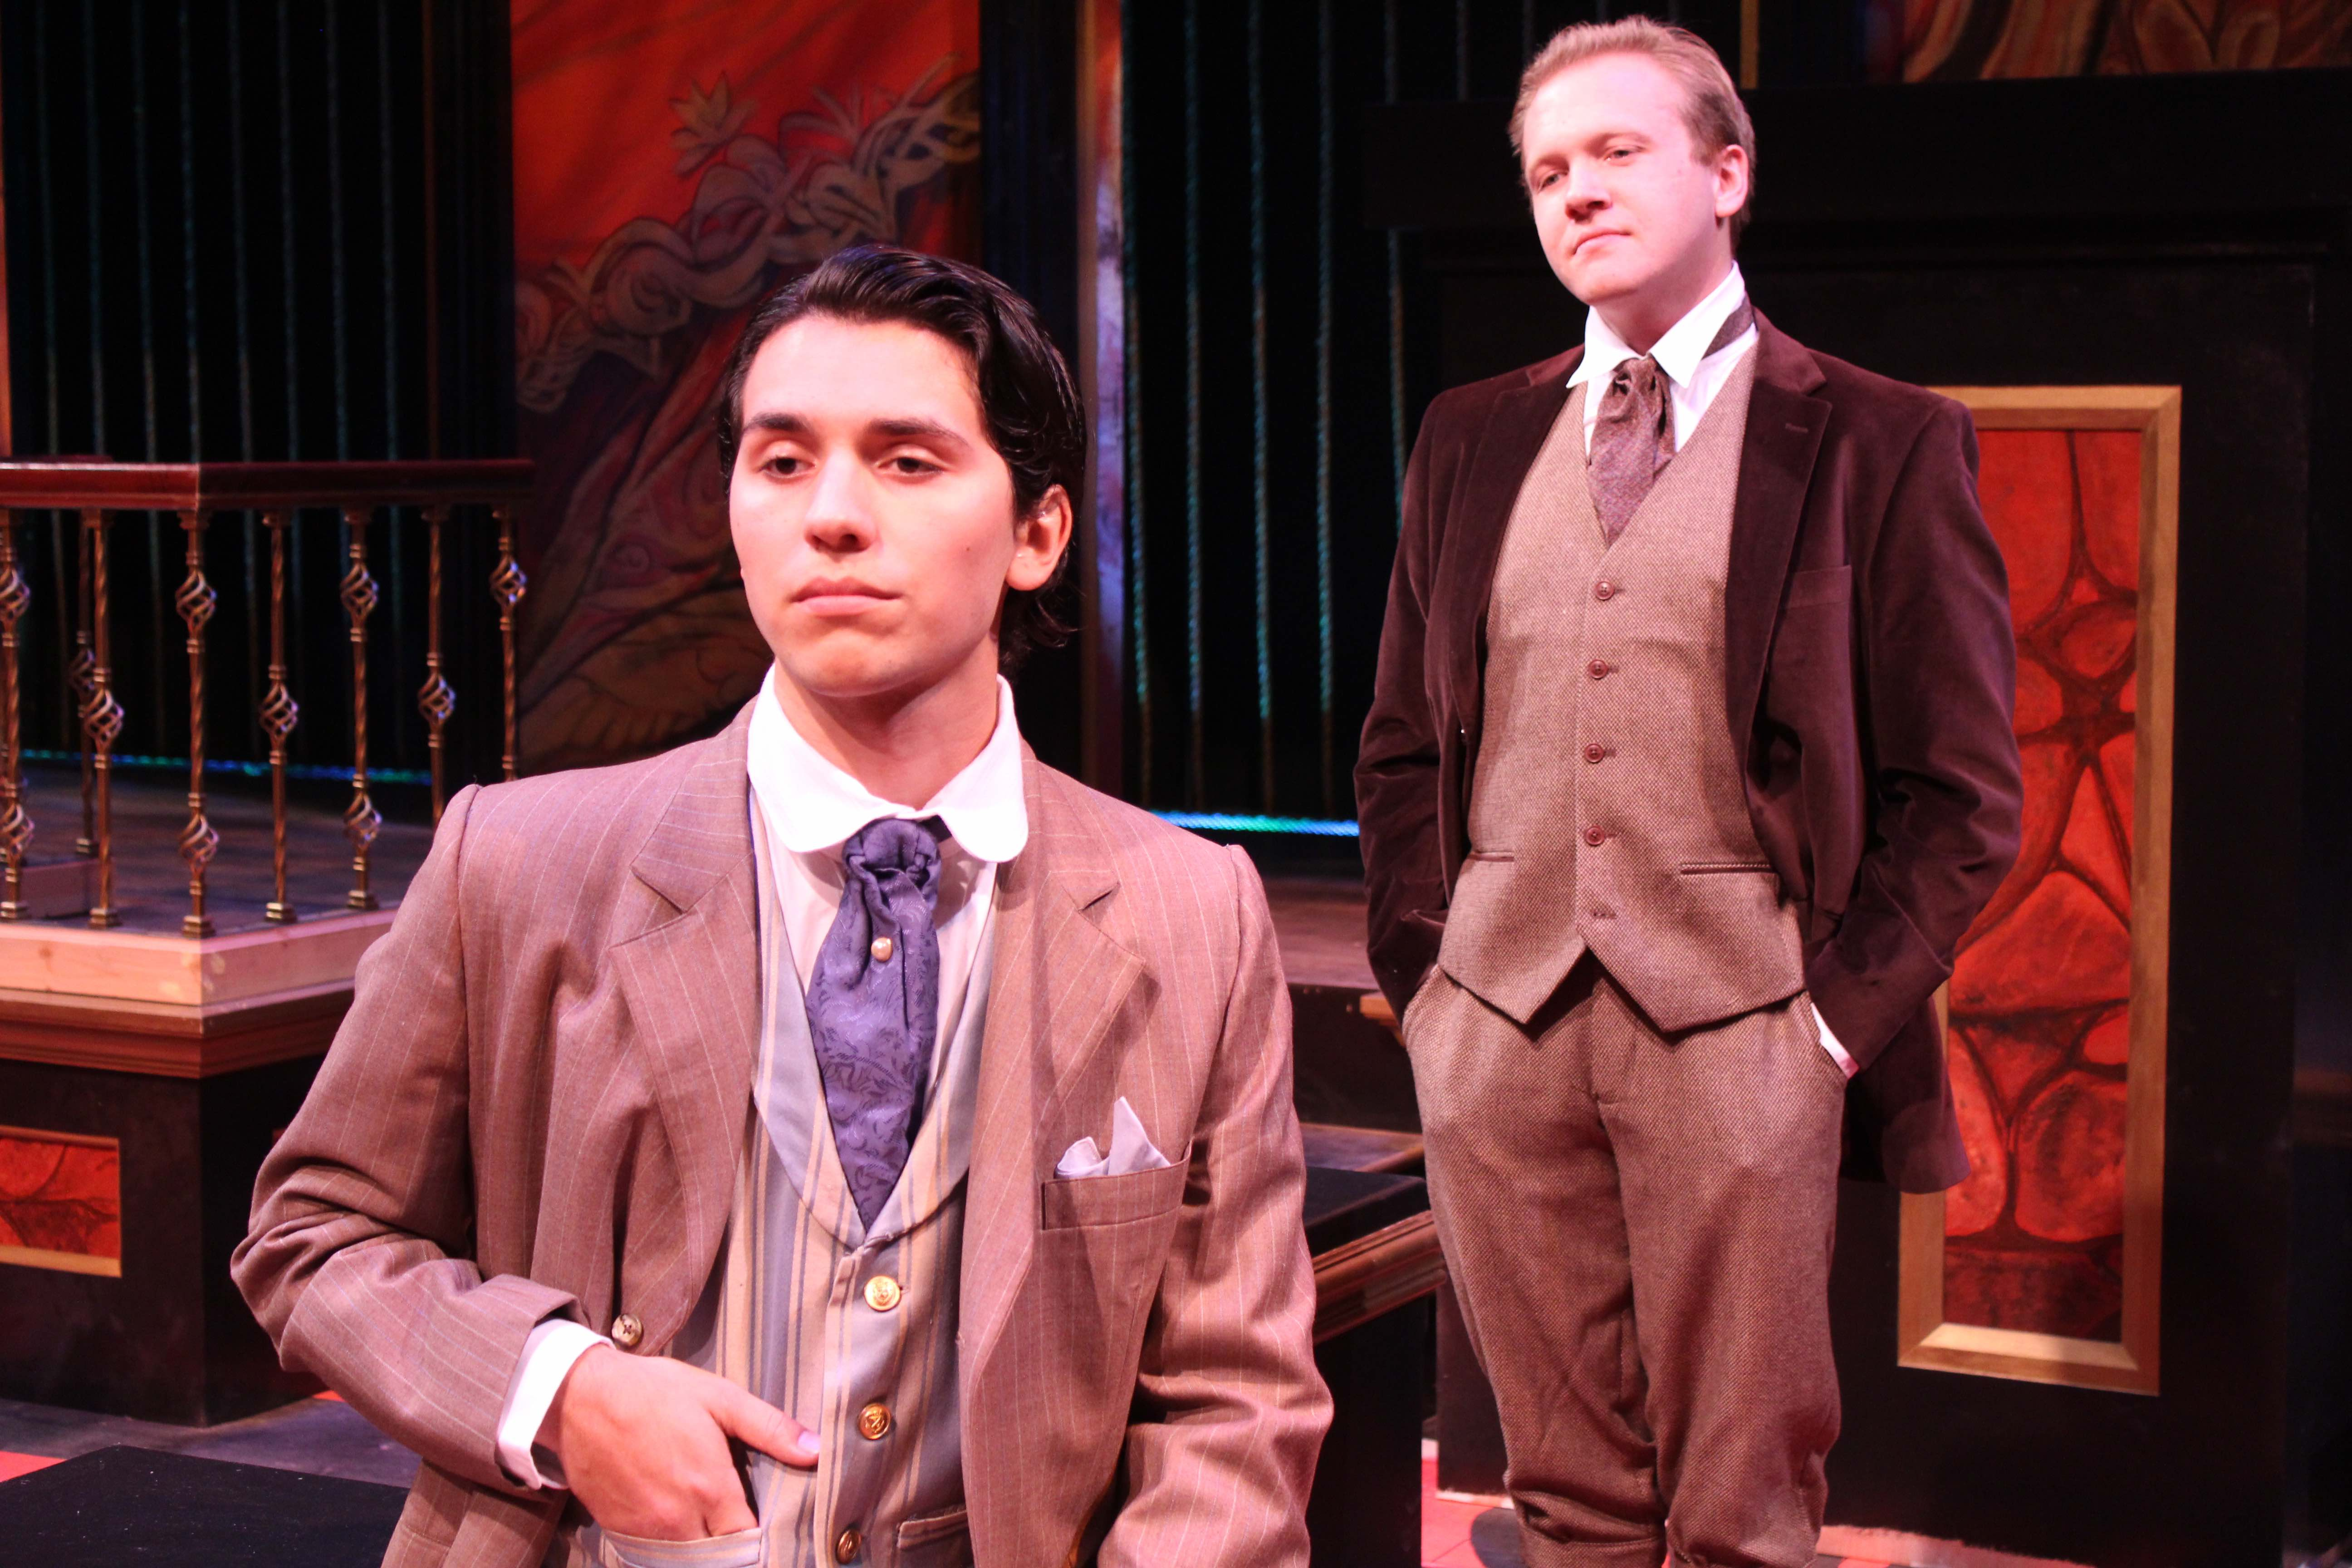 BWW Review: Literature and Law Combine in CATCO's Latest Production